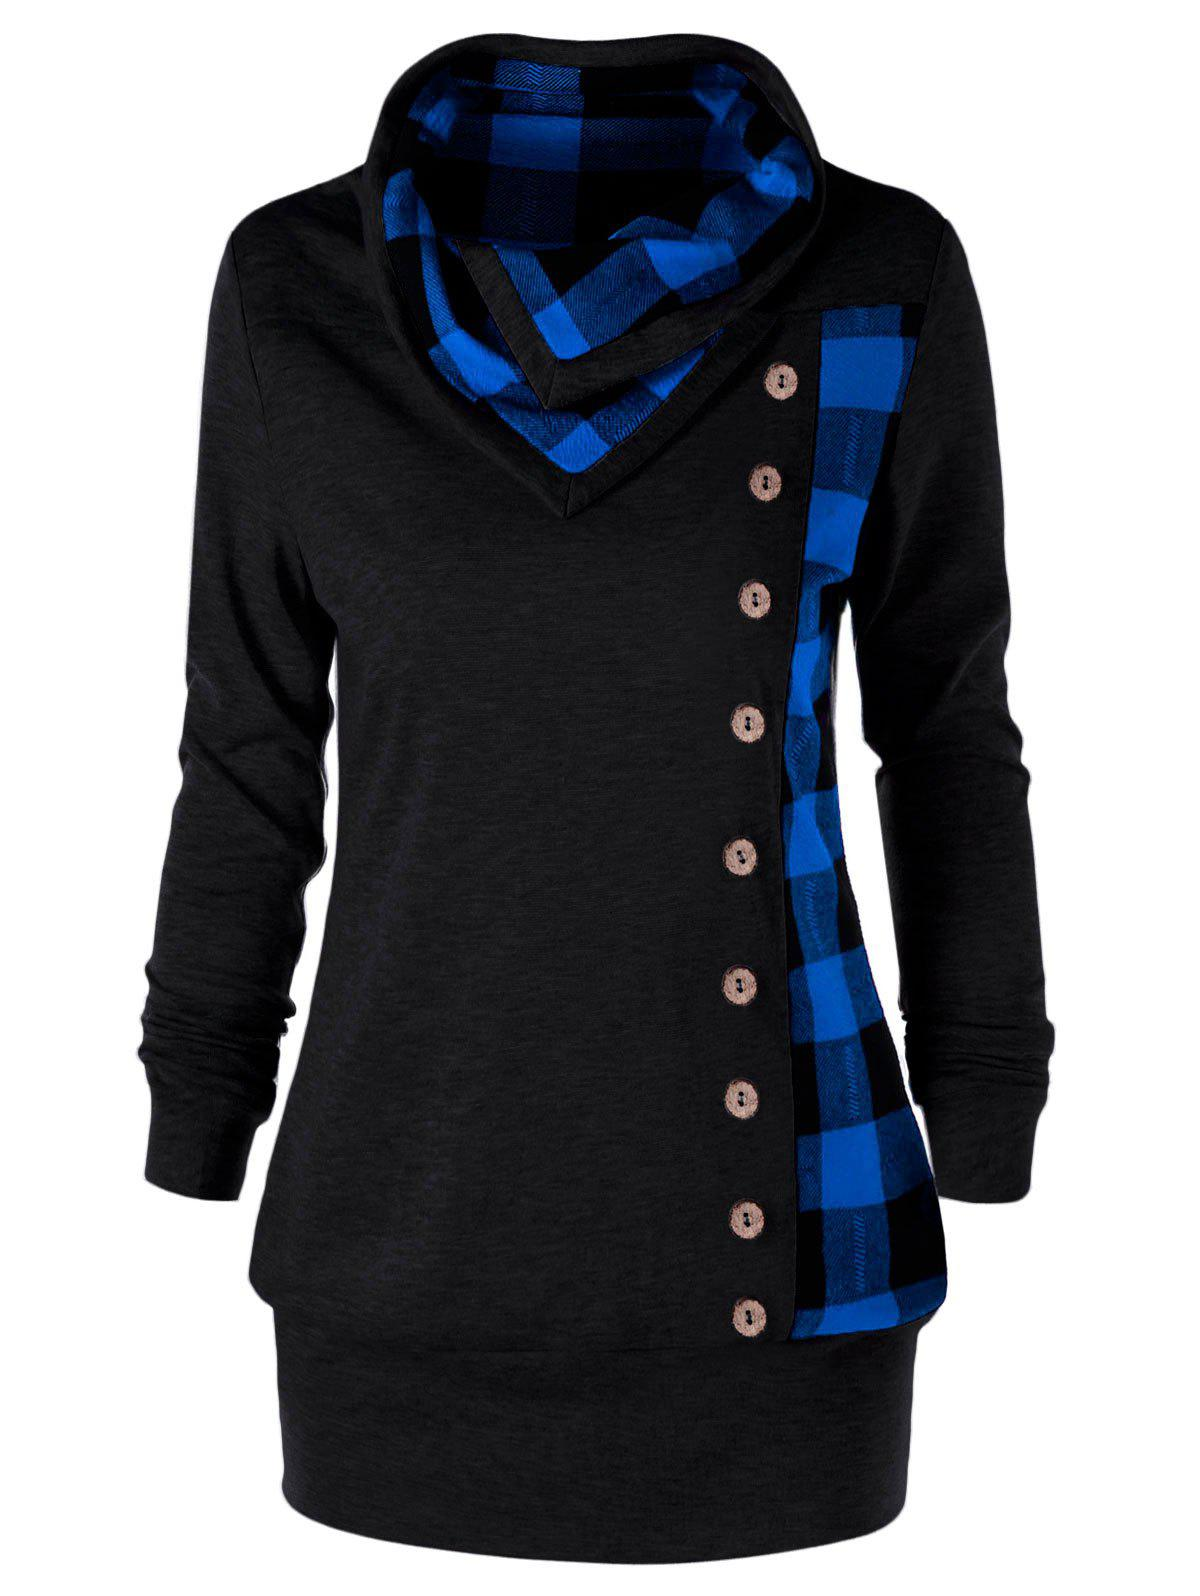 Plus Size Plaid Cowl Neck Tunic Sweatshirt - BLUE/BLACK 3XL